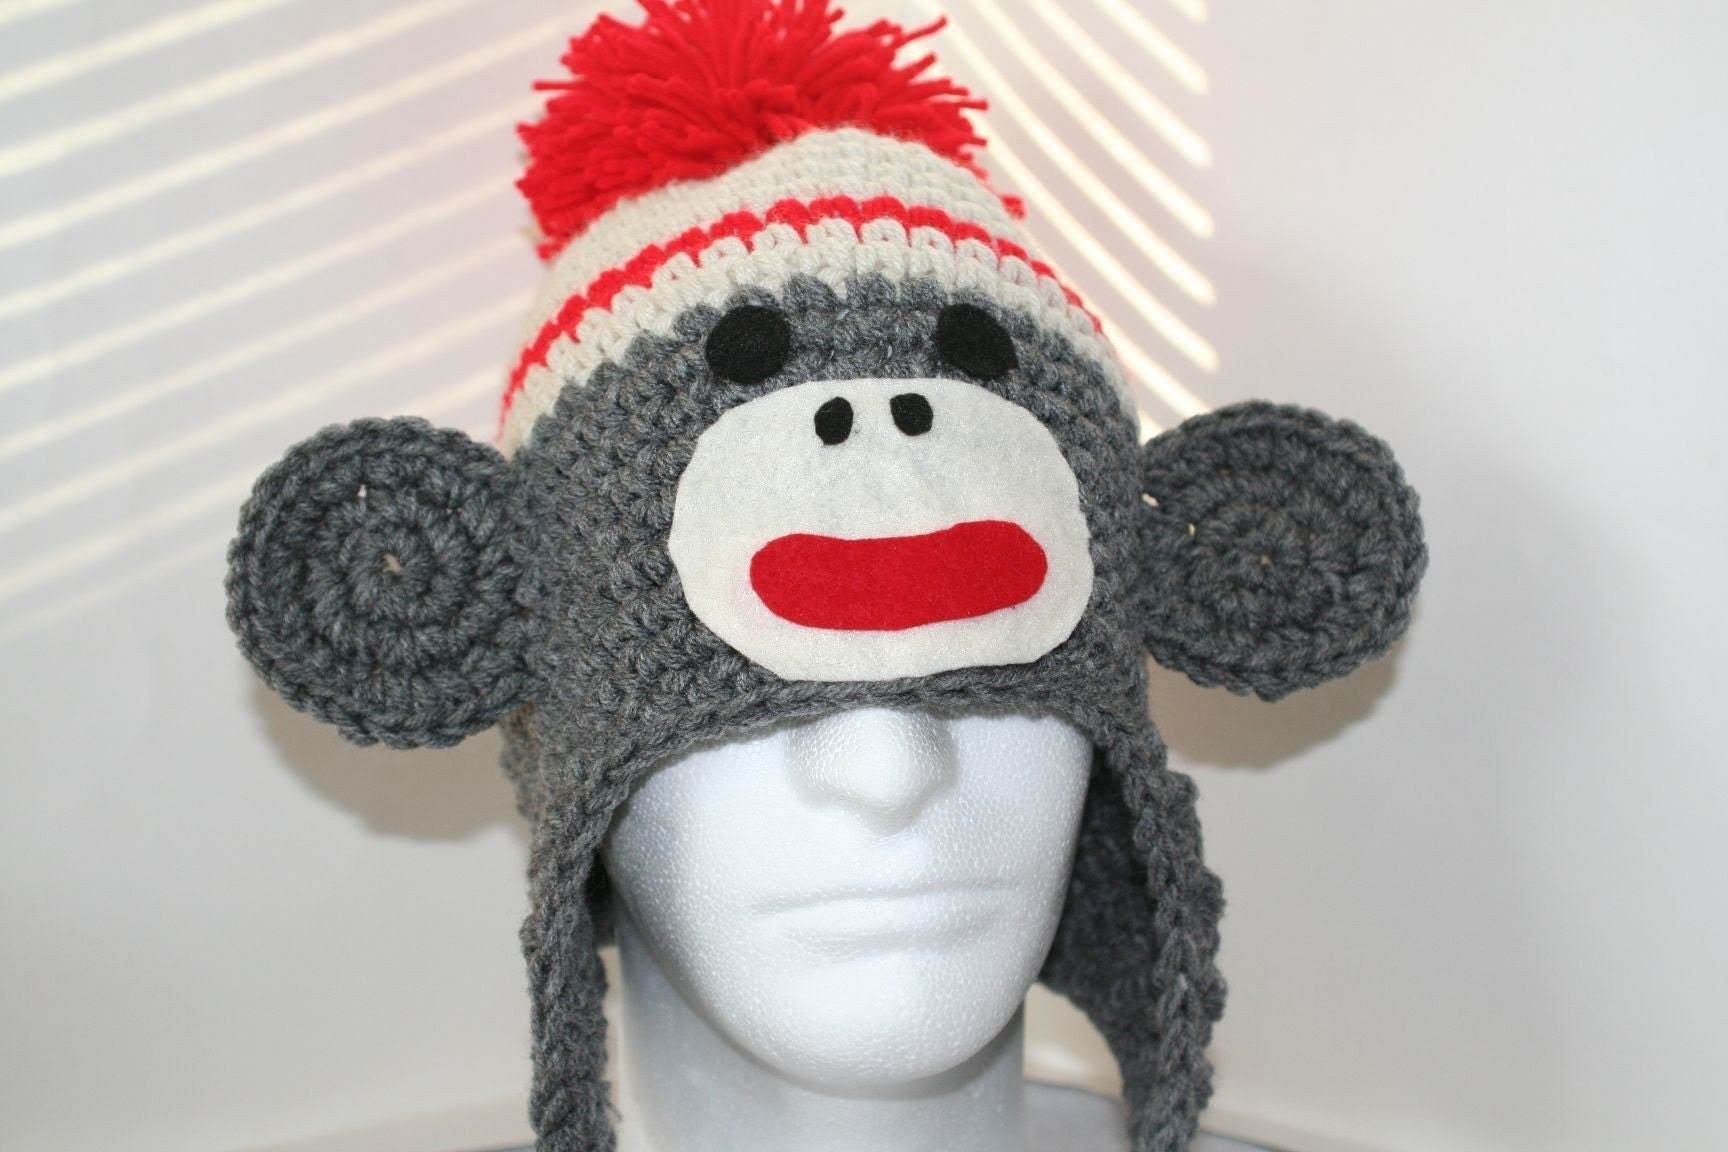 Sock monkey hat with a flat face - unique handmade character hat made to look like a  sock monkey